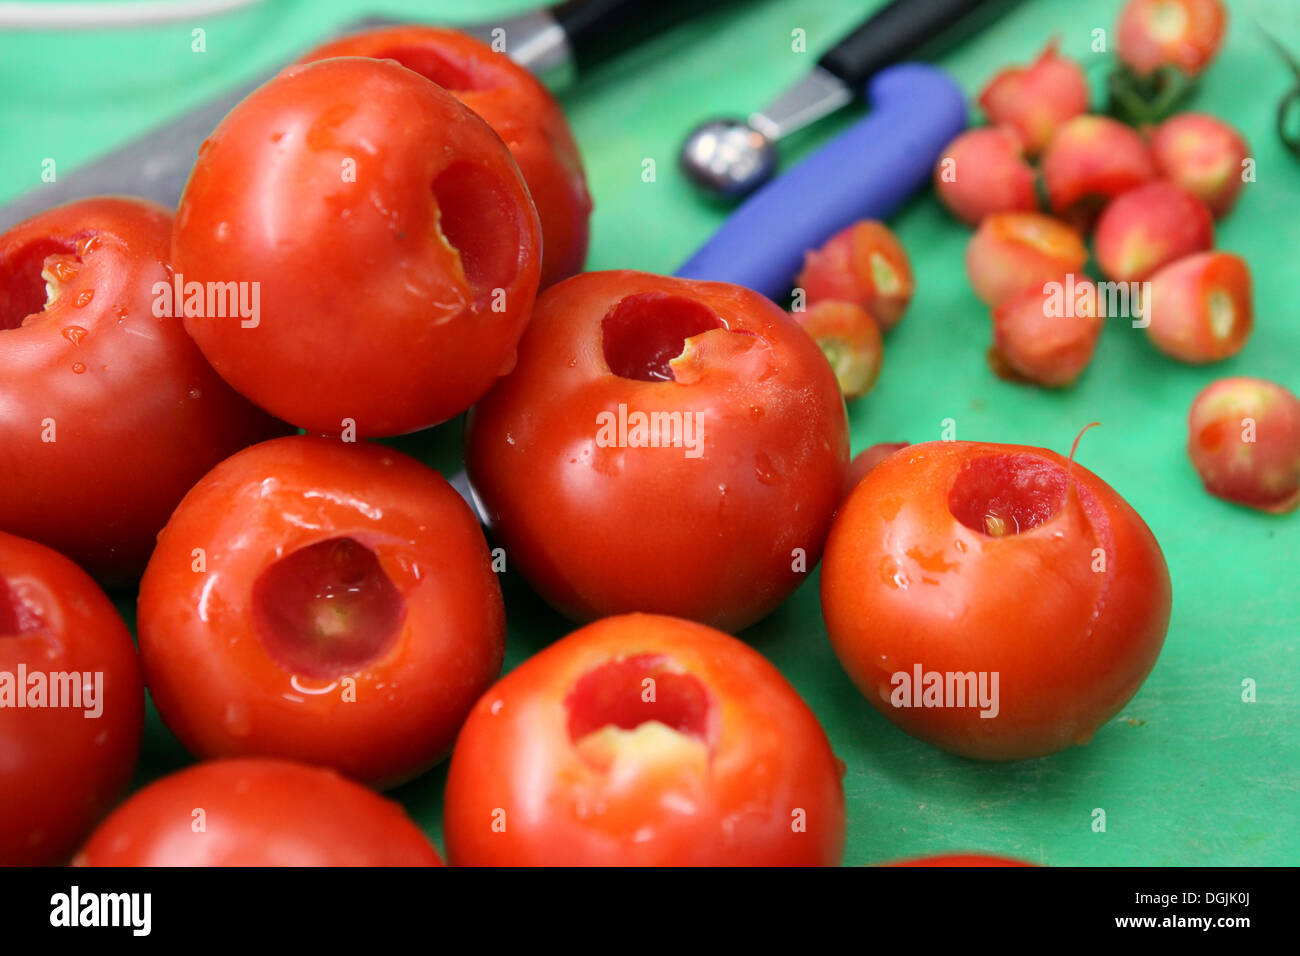 Stuffed tomatoes - hollow tomatoes ready for stuffing - Stock Image